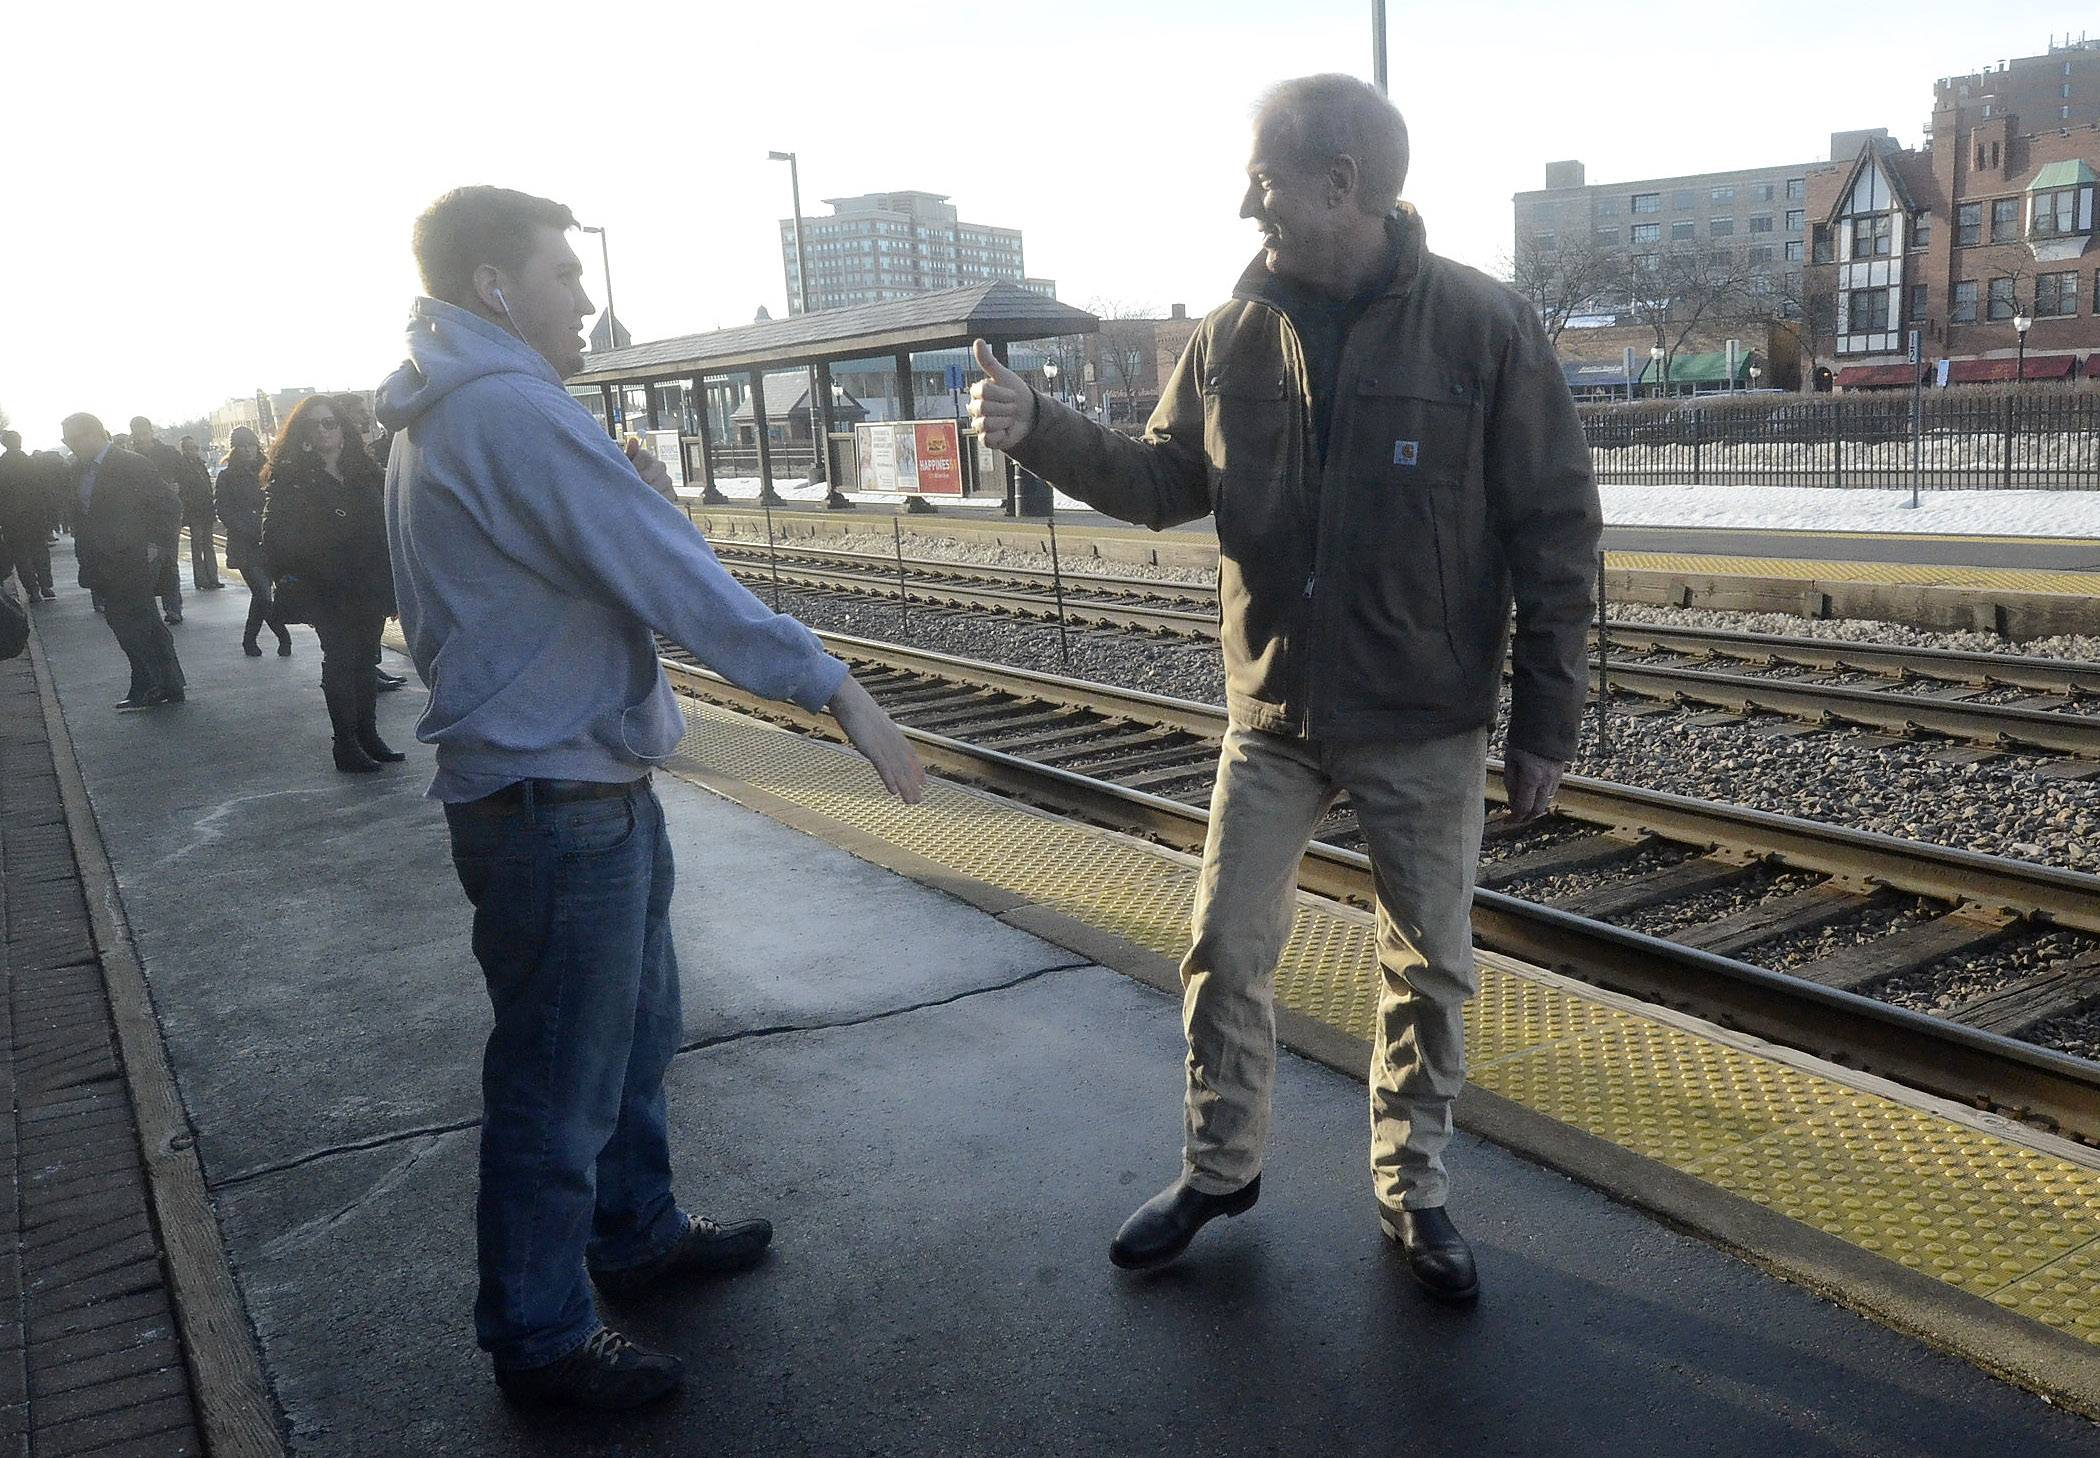 GOP gubernatorial candidate Bruce Rauner visits with voters at the Arlington Heights Metra train station Monday morning.